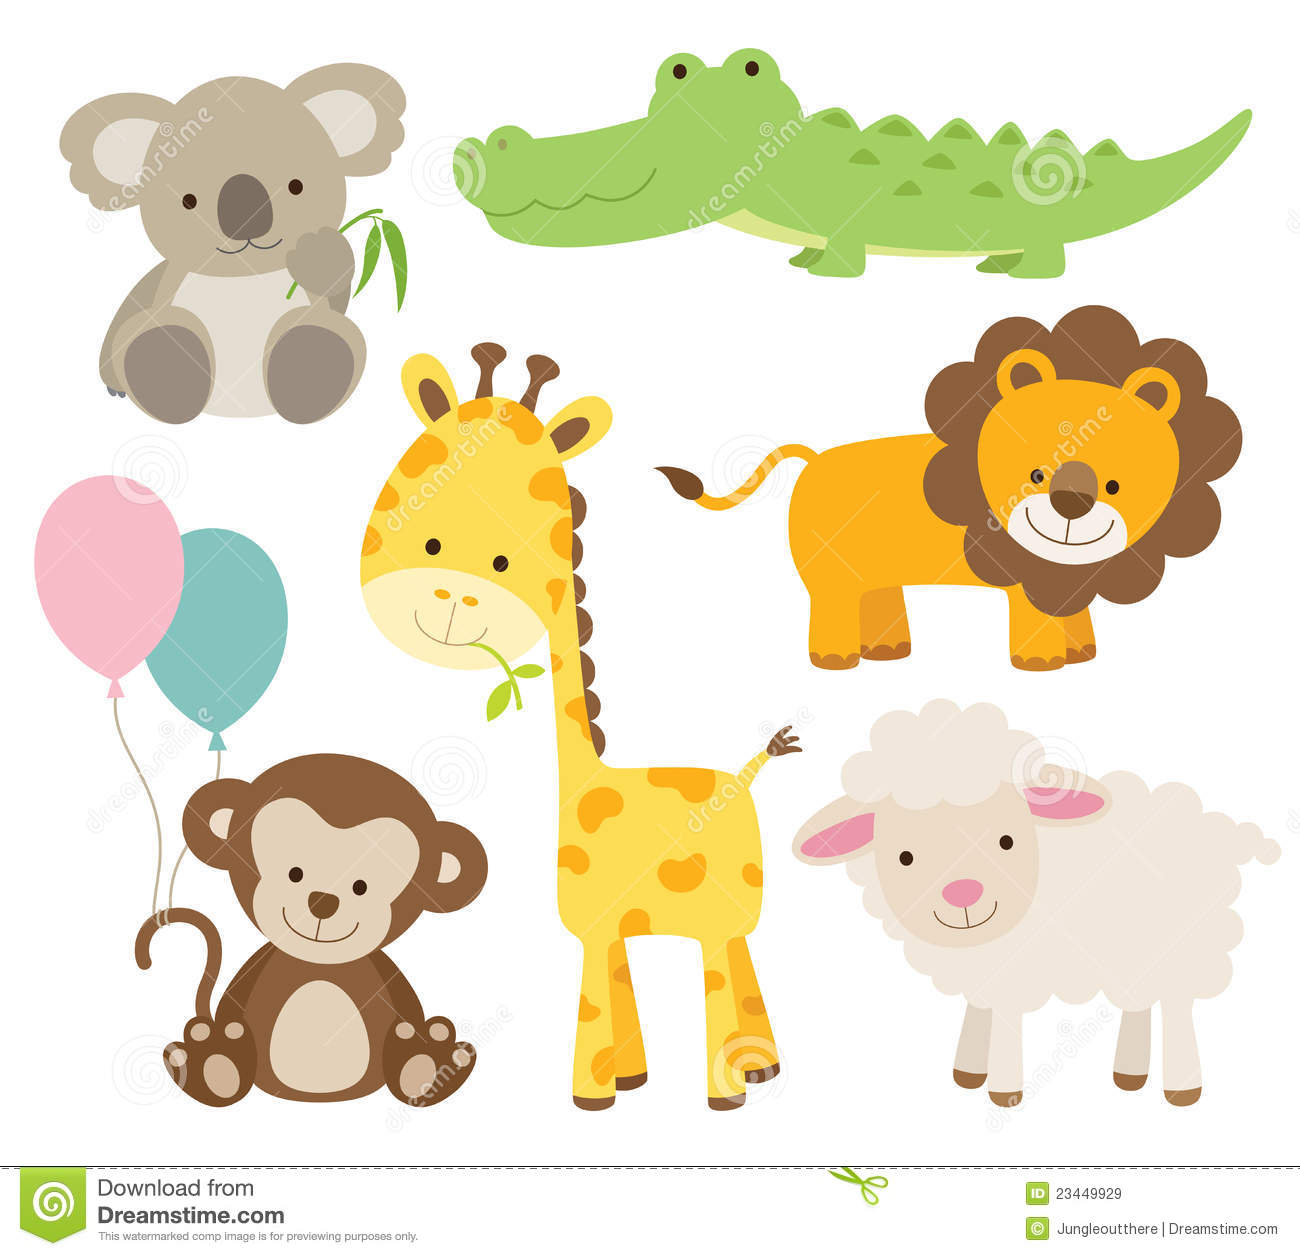 cute animal wallpaper tumblr clipart #18